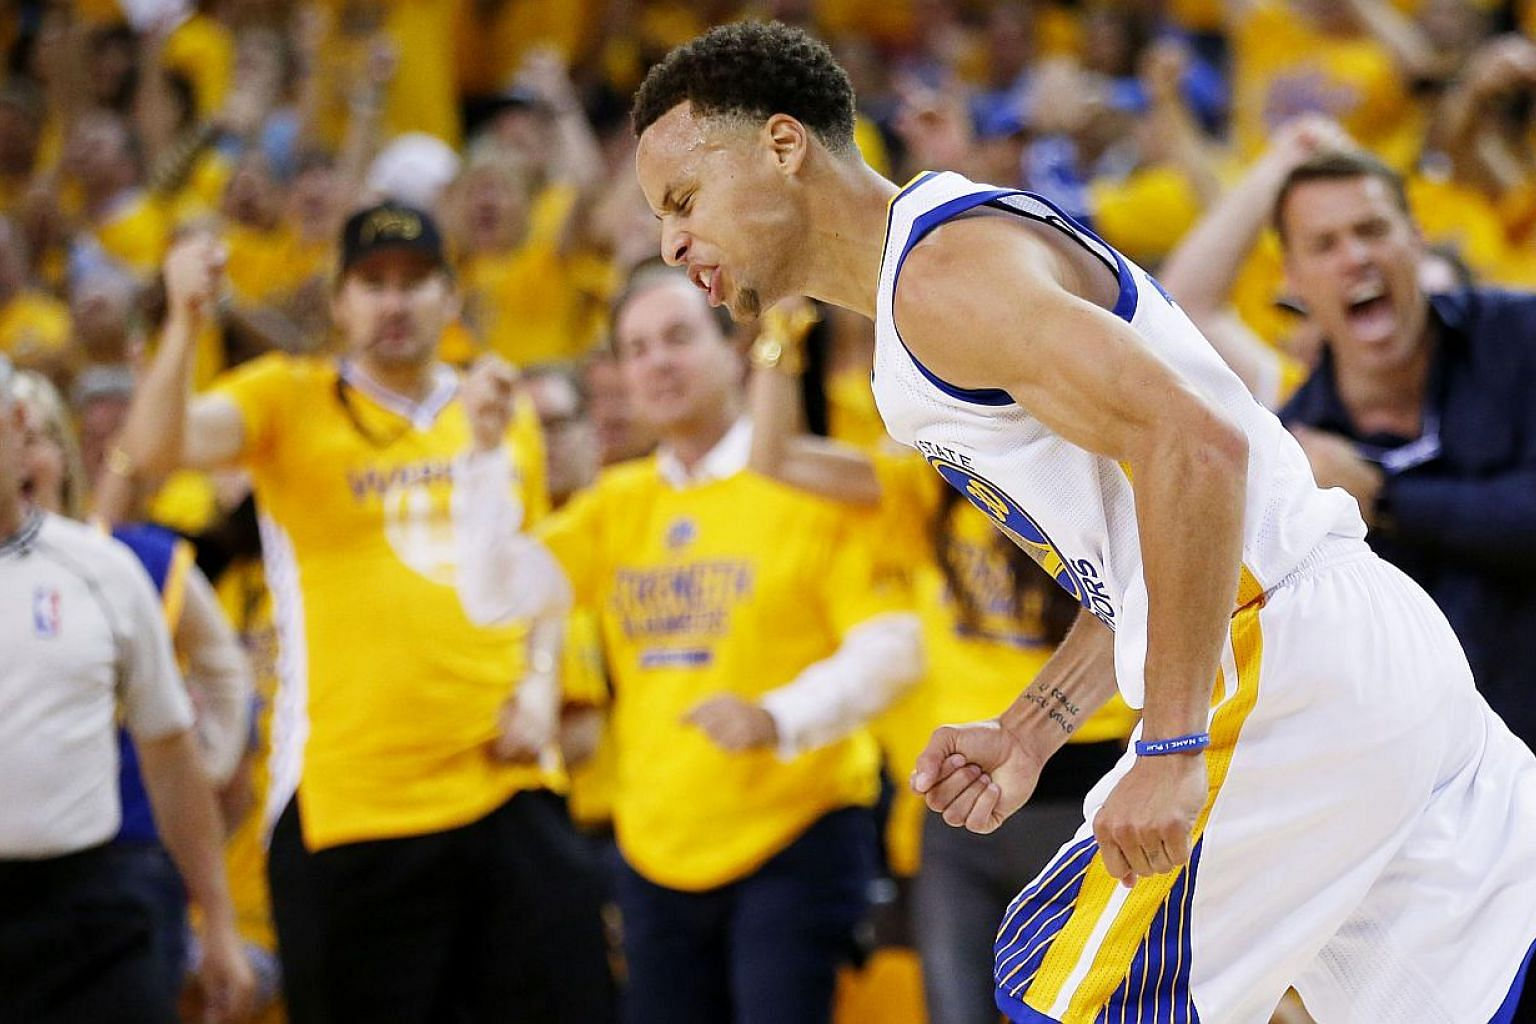 Stephen Curry of the Golden State Warriors celebrates in the second quarter against the Cleveland Cavaliers during Game Five of the 2015 NBA Finals at the Oracle Arena on June 14, 2015 in Oakland, California. -- PHOTO: AFP